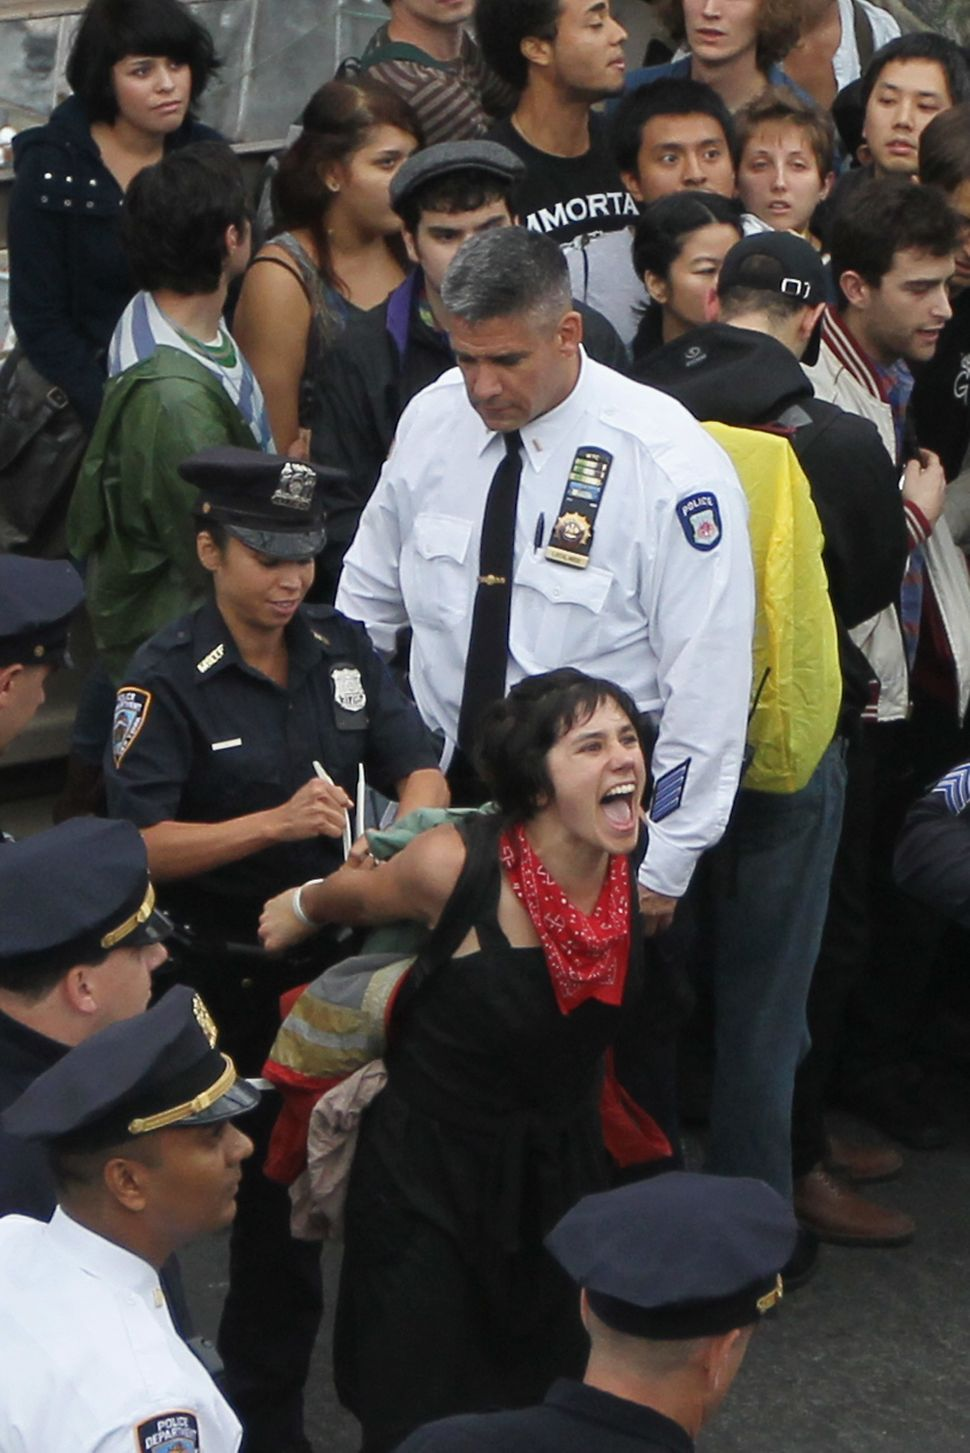 NEW YORK, NY - OCTOBER 01:   Police arrest a demonstrator affiliated with the Occupy Wall Street movement after she and fello